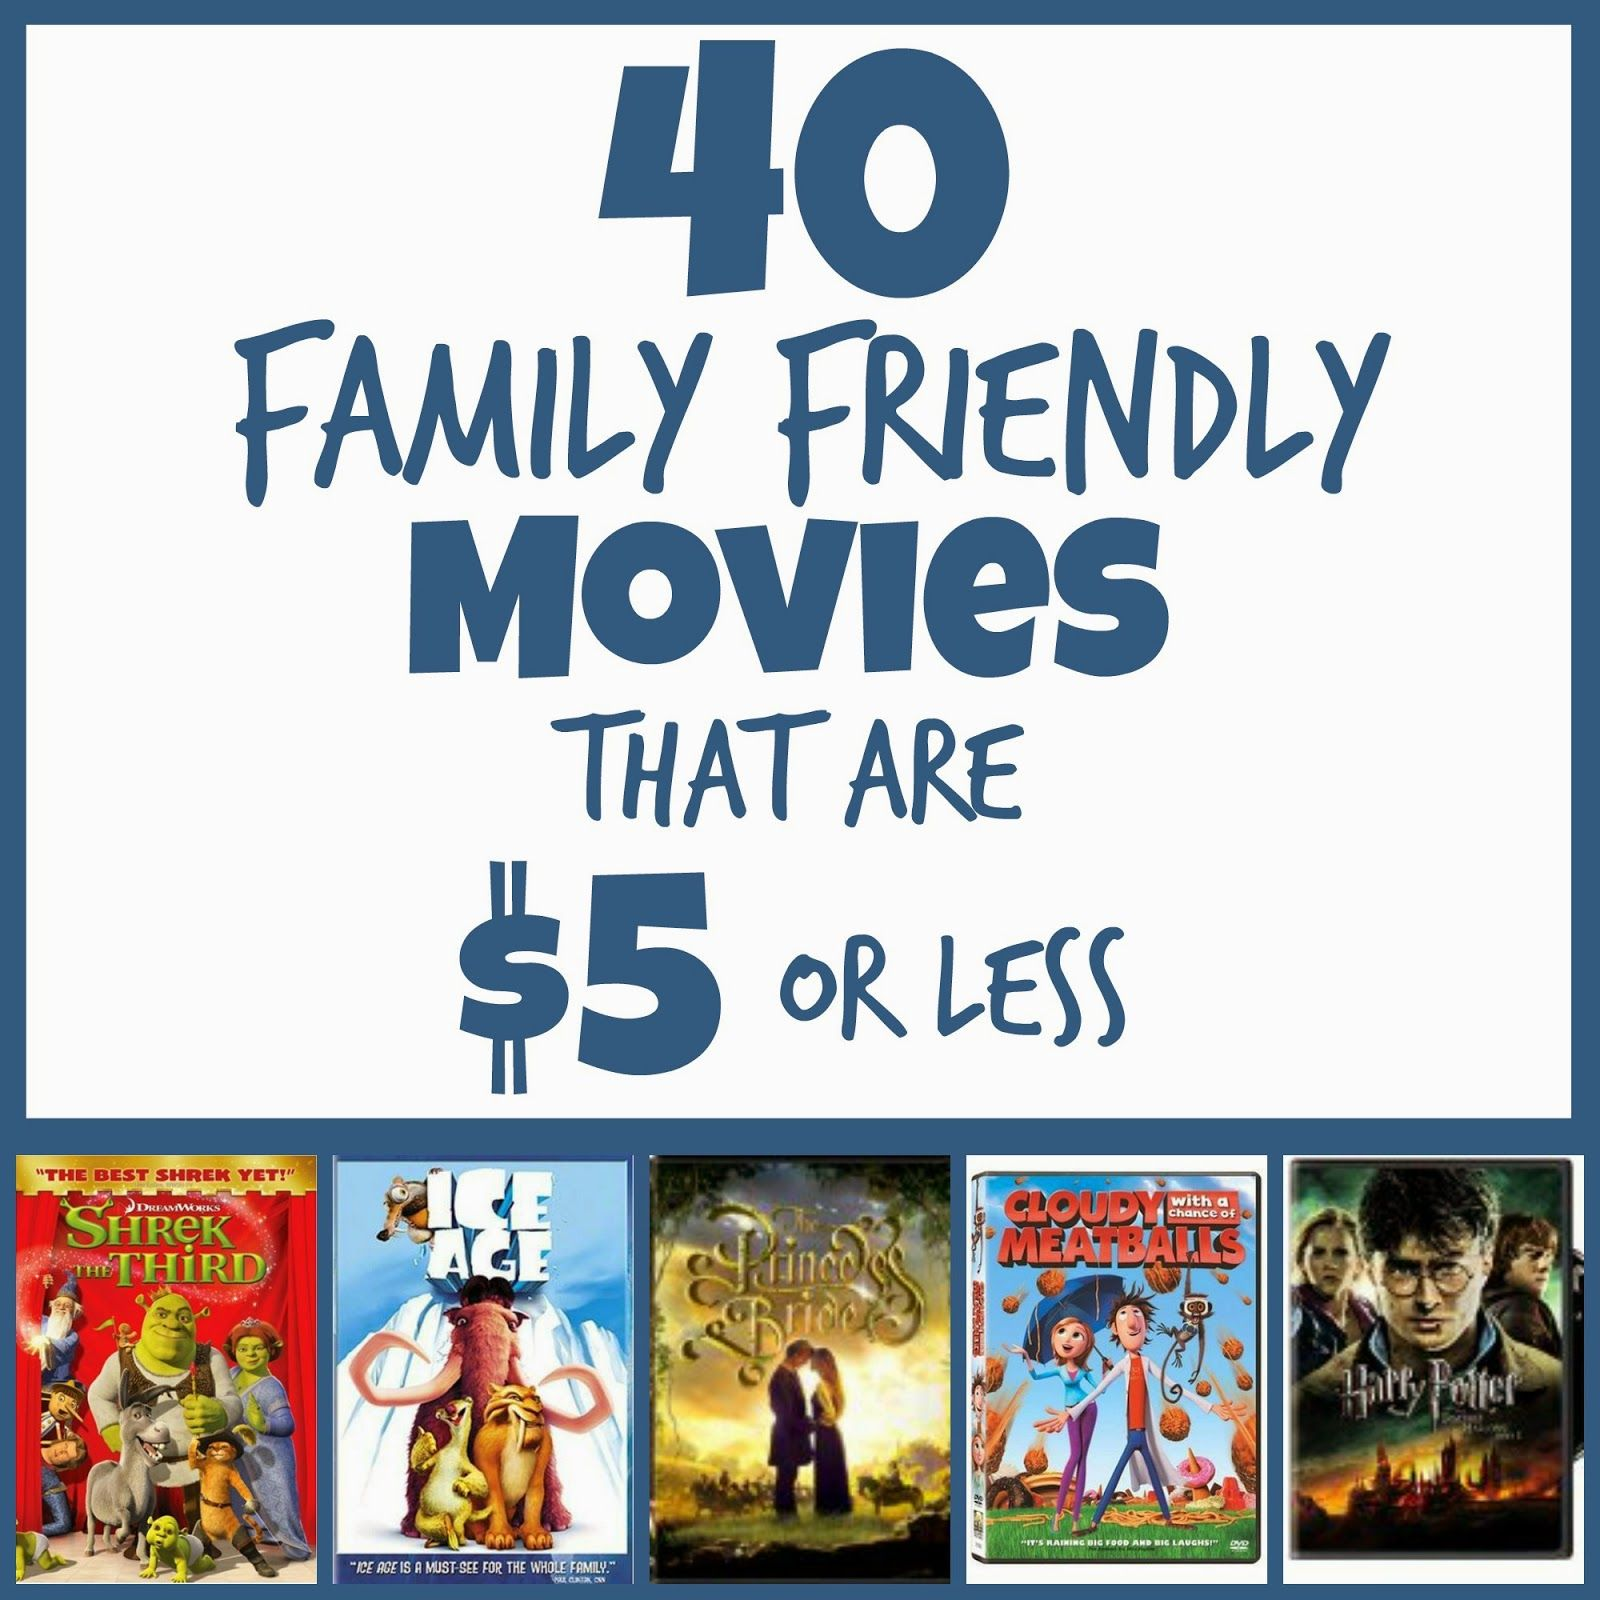 The perfect Stocking Stuffers! These 40 Family Friendly Movies bring back so many memories!